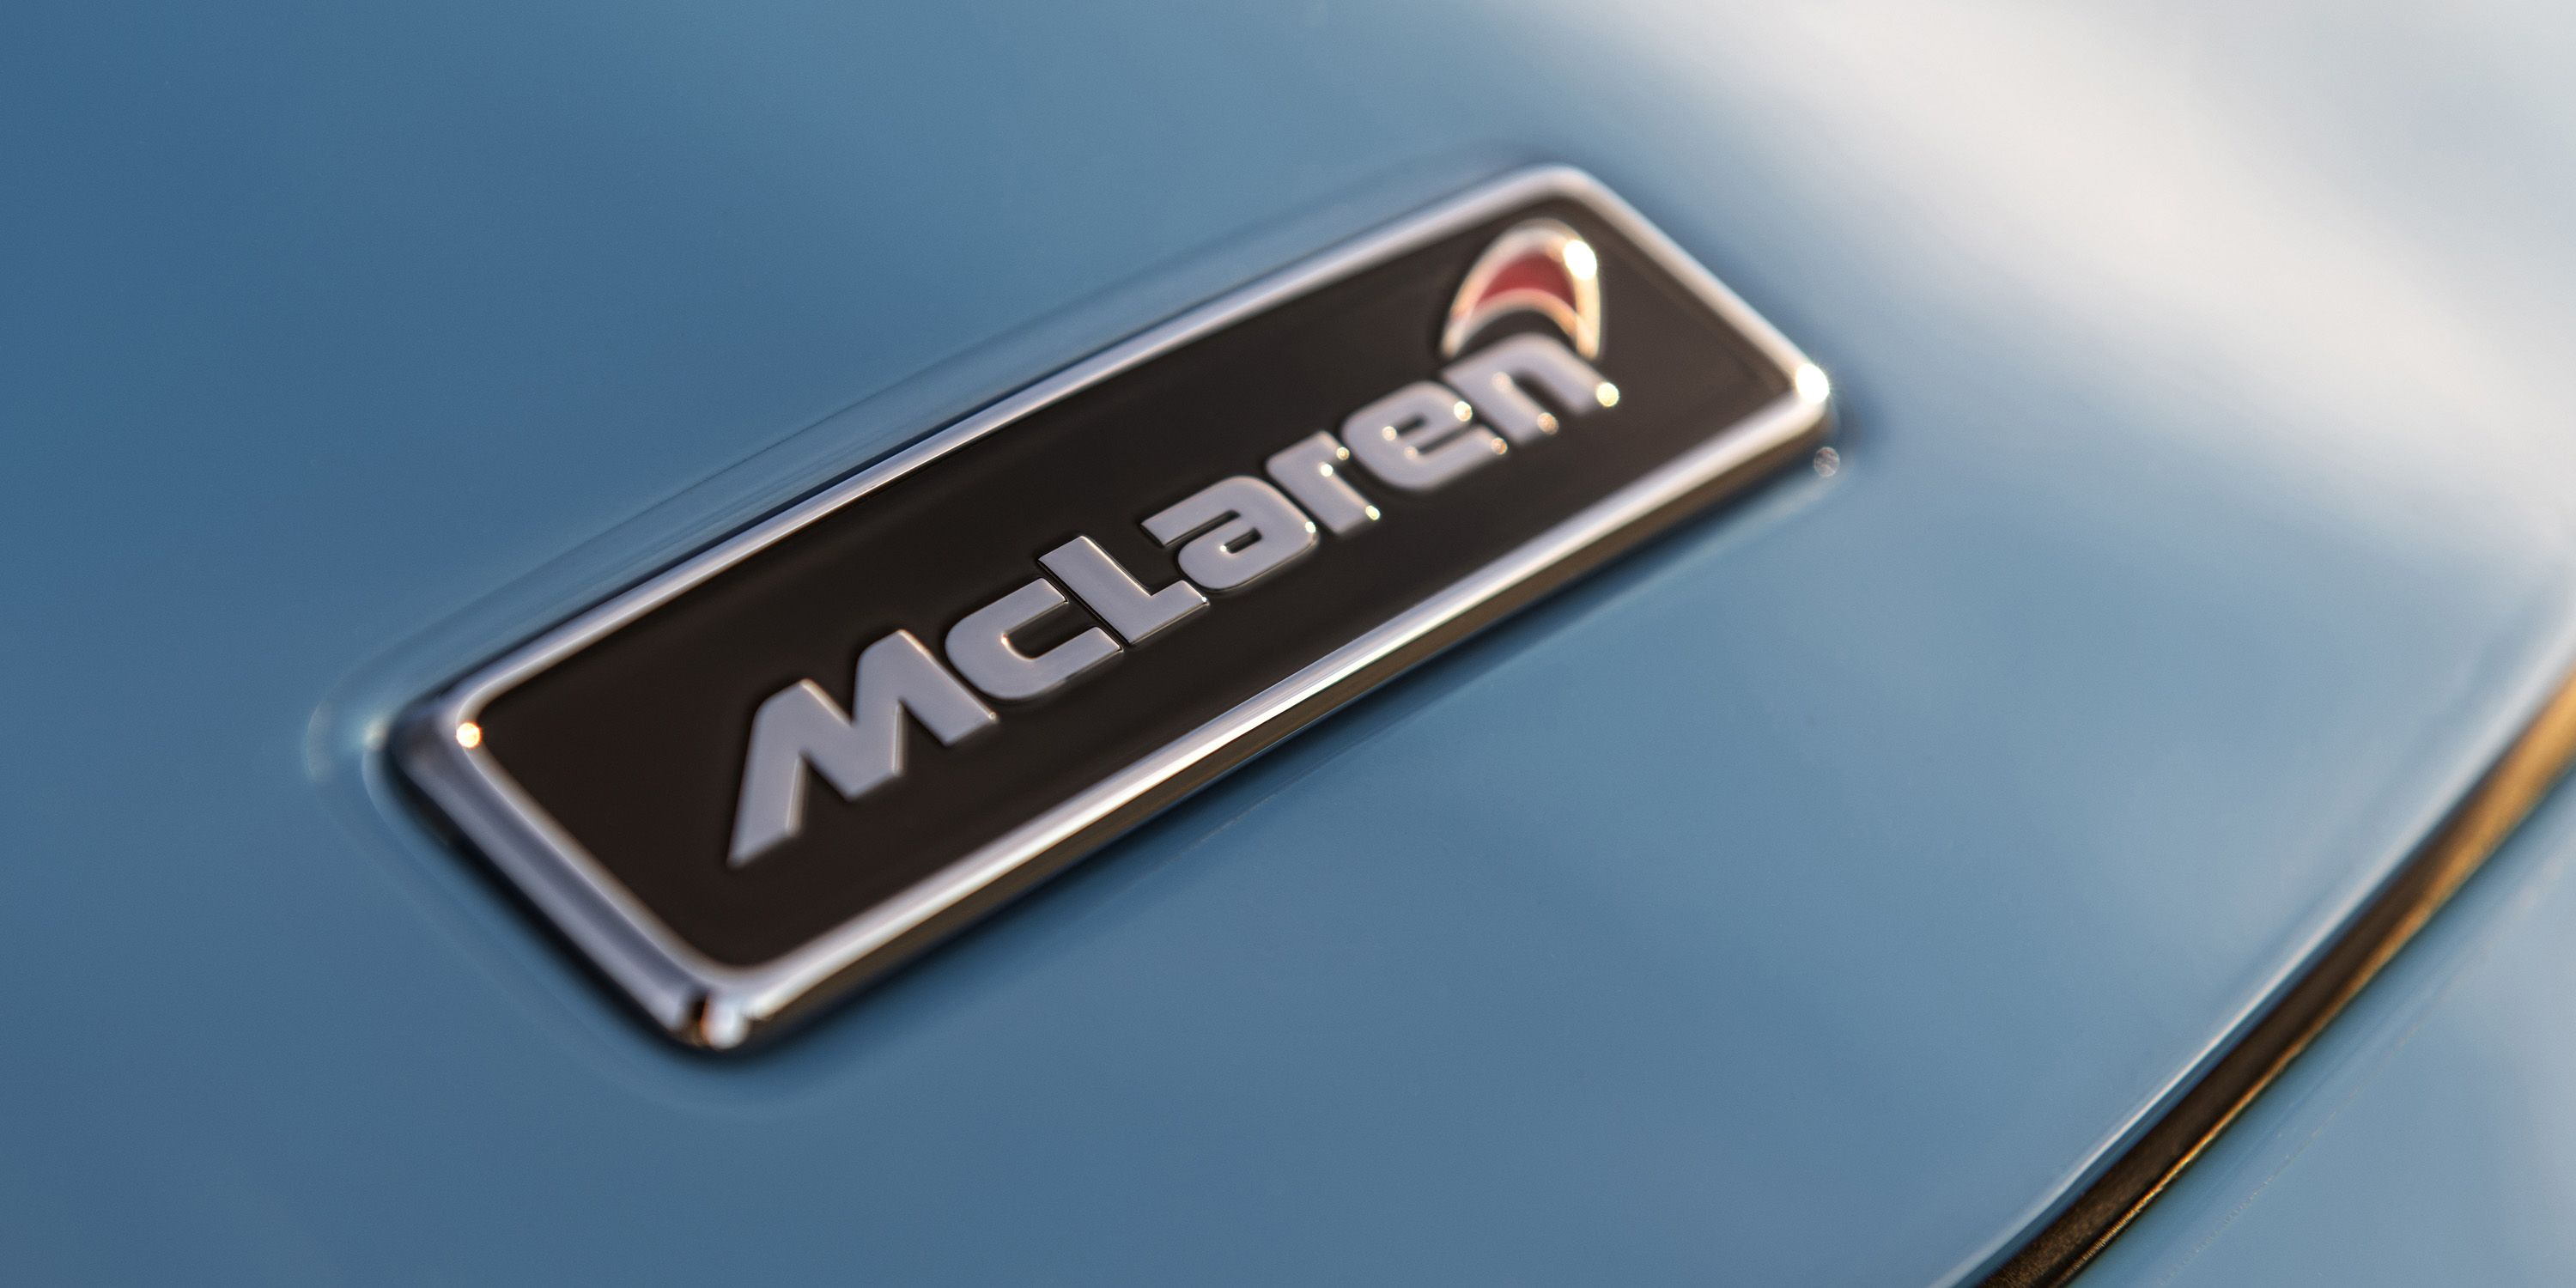 Mclarens Logo Probably Comes From Cigarettes And A Flightless Bird